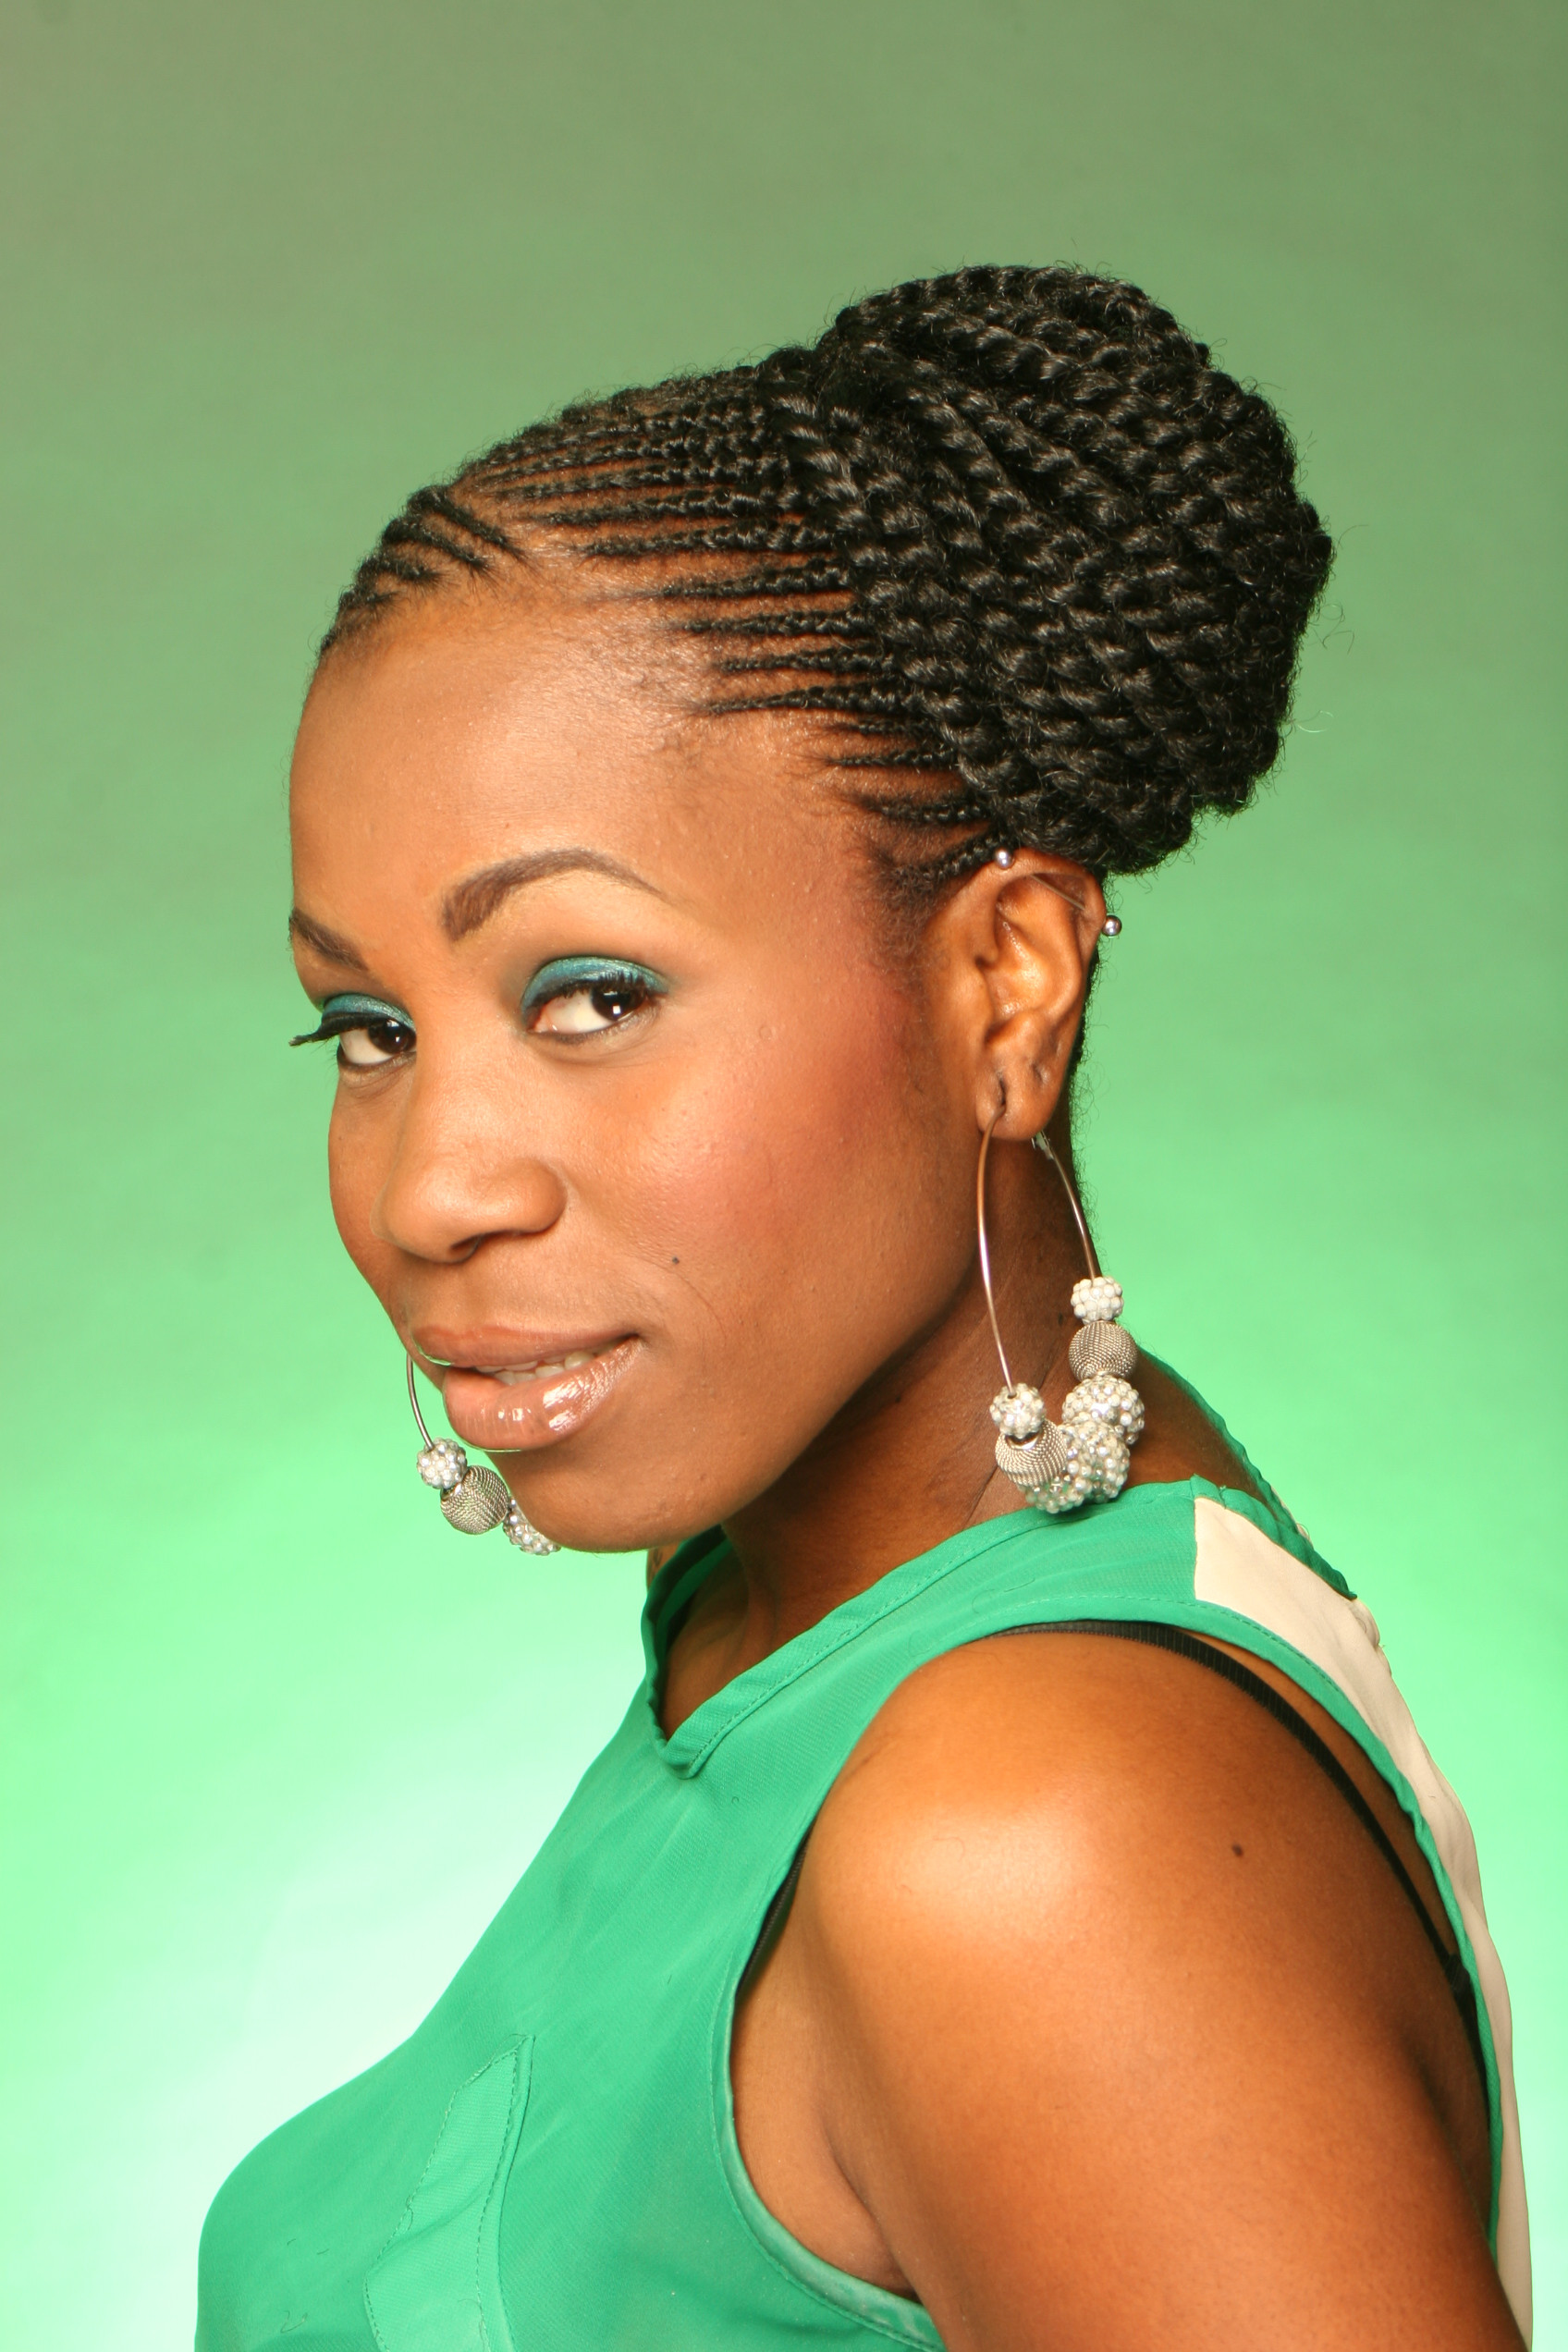 Best ideas about Nigerian Braid Hairstyles . Save or Pin 25 African Hair Braiding Styles The Xerxes Now.